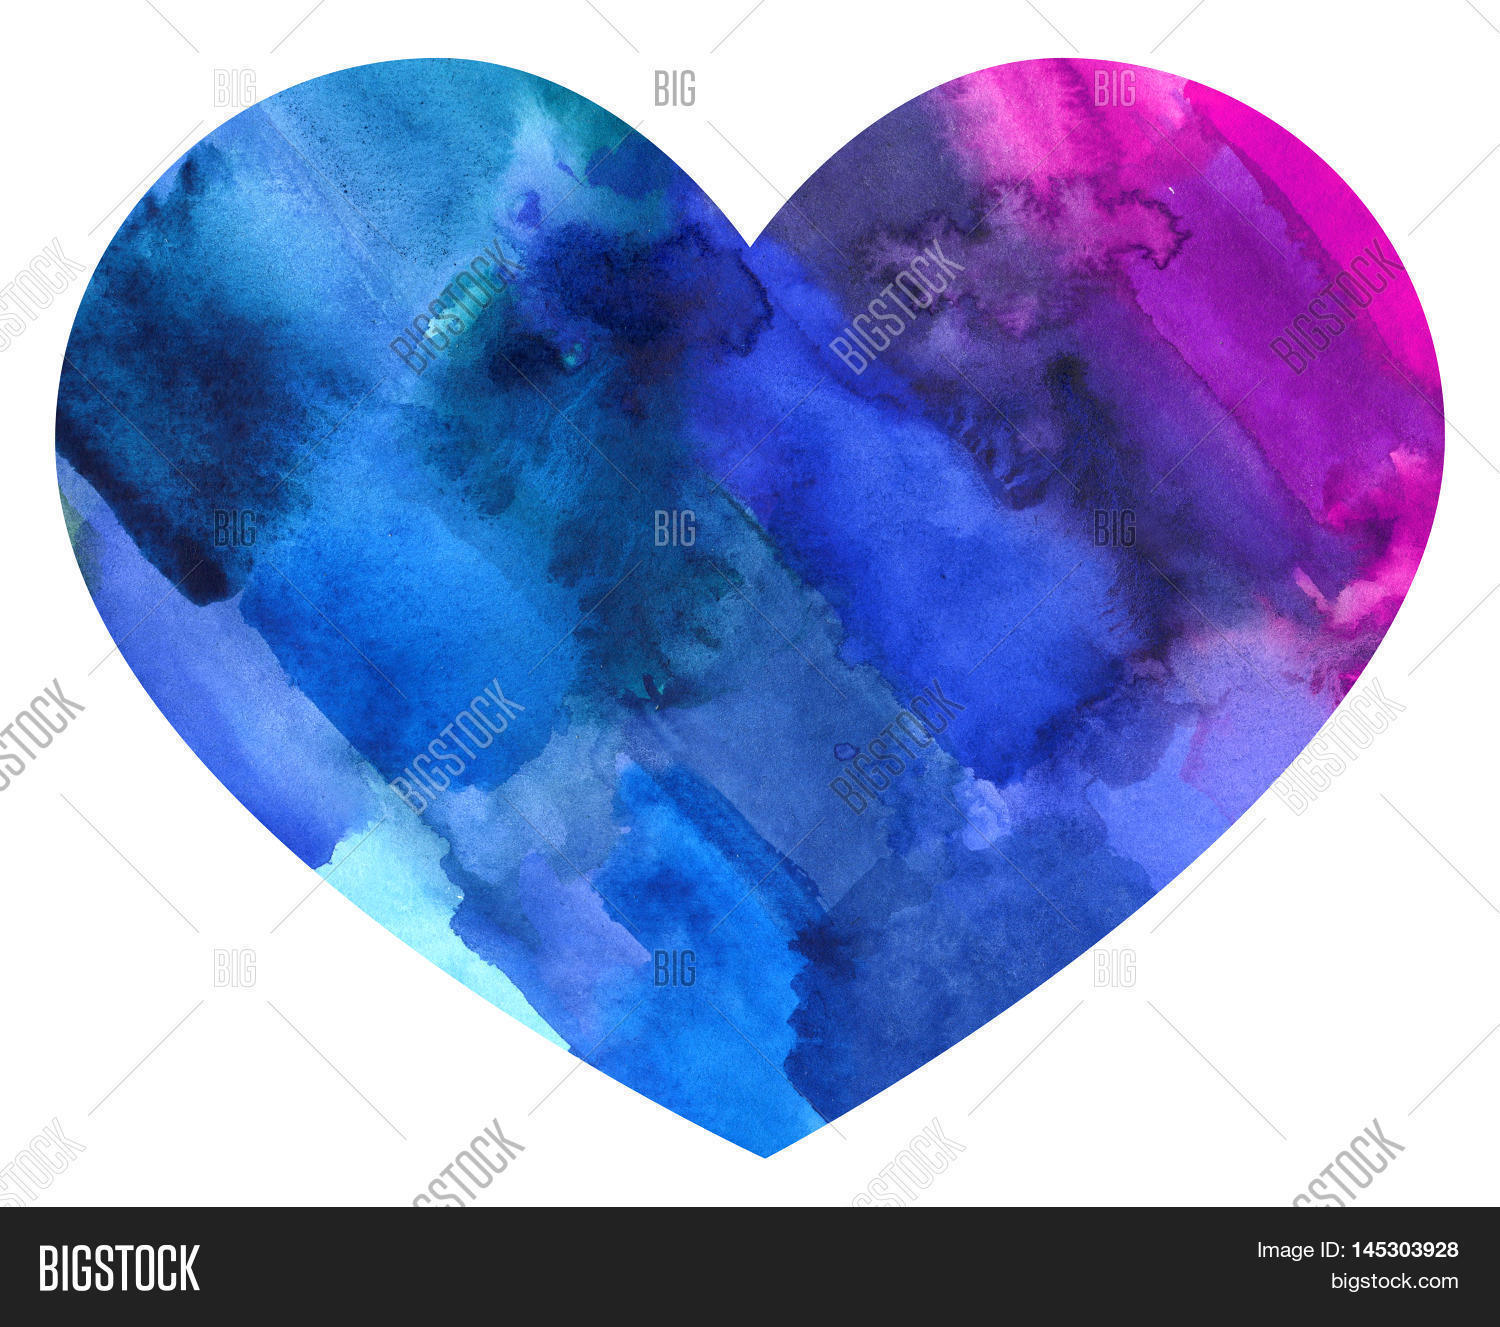 Abstract Watercolor Colorful Heart Image & Photo | Bigstock